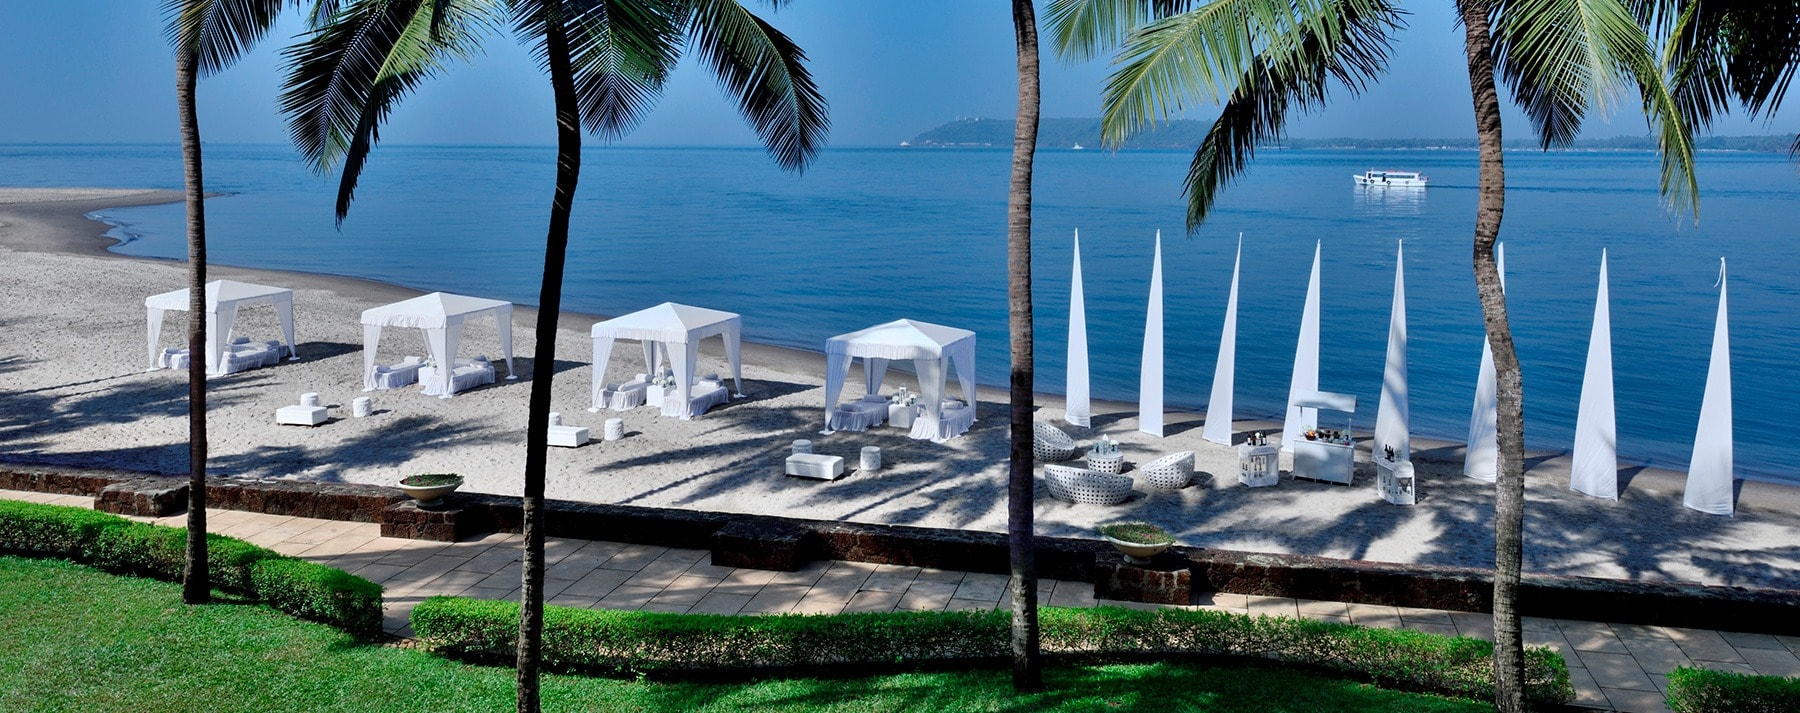 Marriott Bonvoy Hotels, Goa